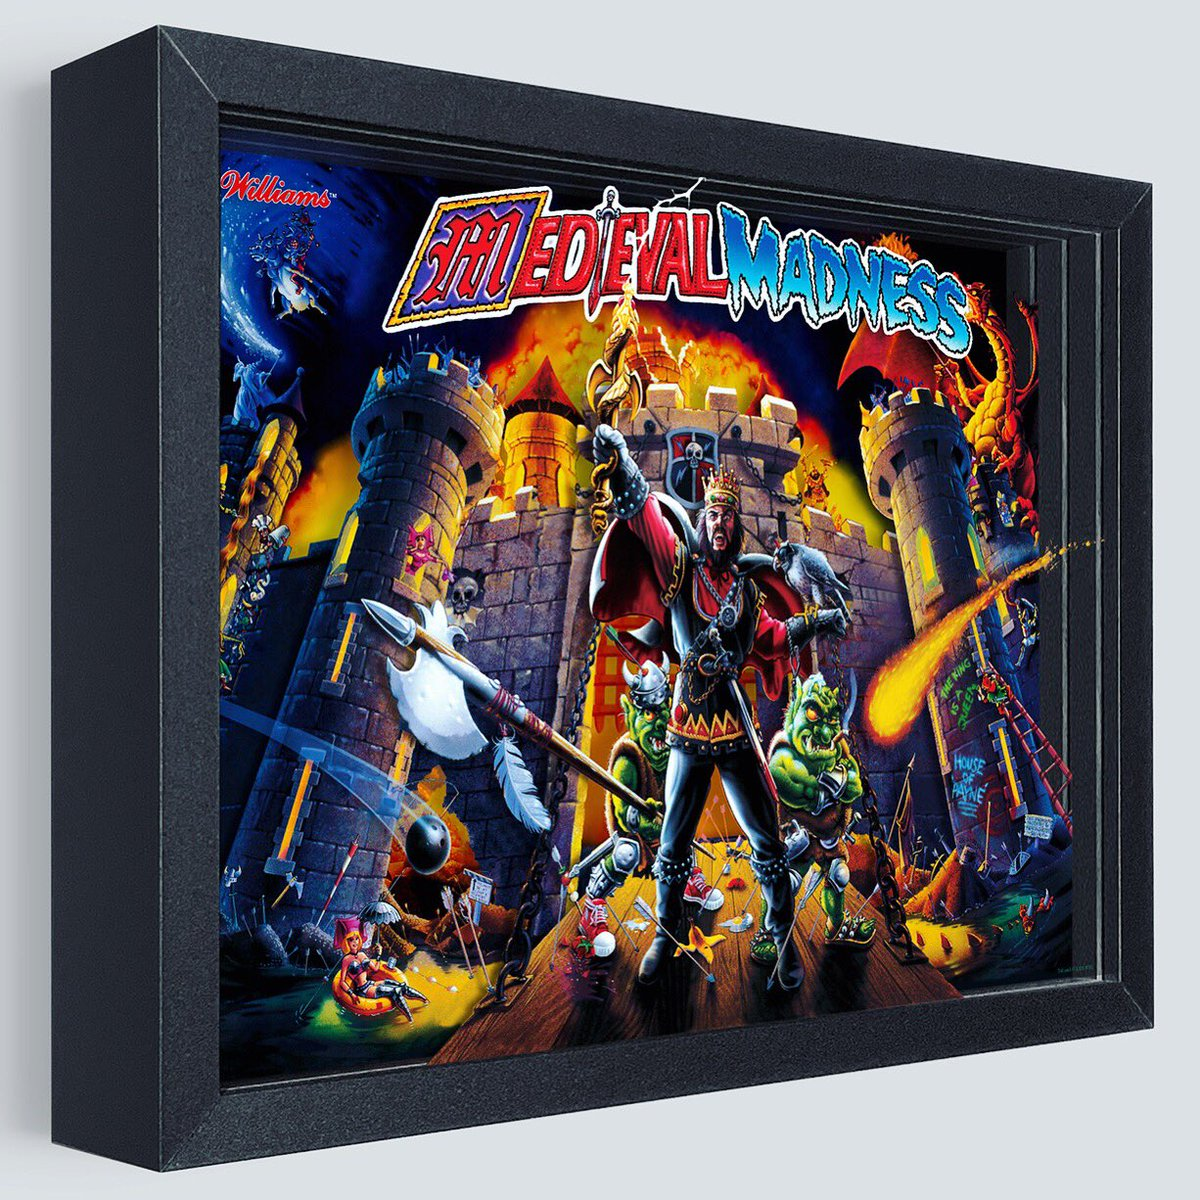 NOW AVAILABLE FOR PRE-ORDER! https://t.co/3qQOpvIxad  Medieval Madness has finally arrived after so many requests for this pinball classic! Grab yours now! Shipping in Late-June  #art #artwork #pinball #medievalmadness #game #arcade #kingdom #castle #drawbridge #battle #destroy https://t.co/v2xPGsZlwV